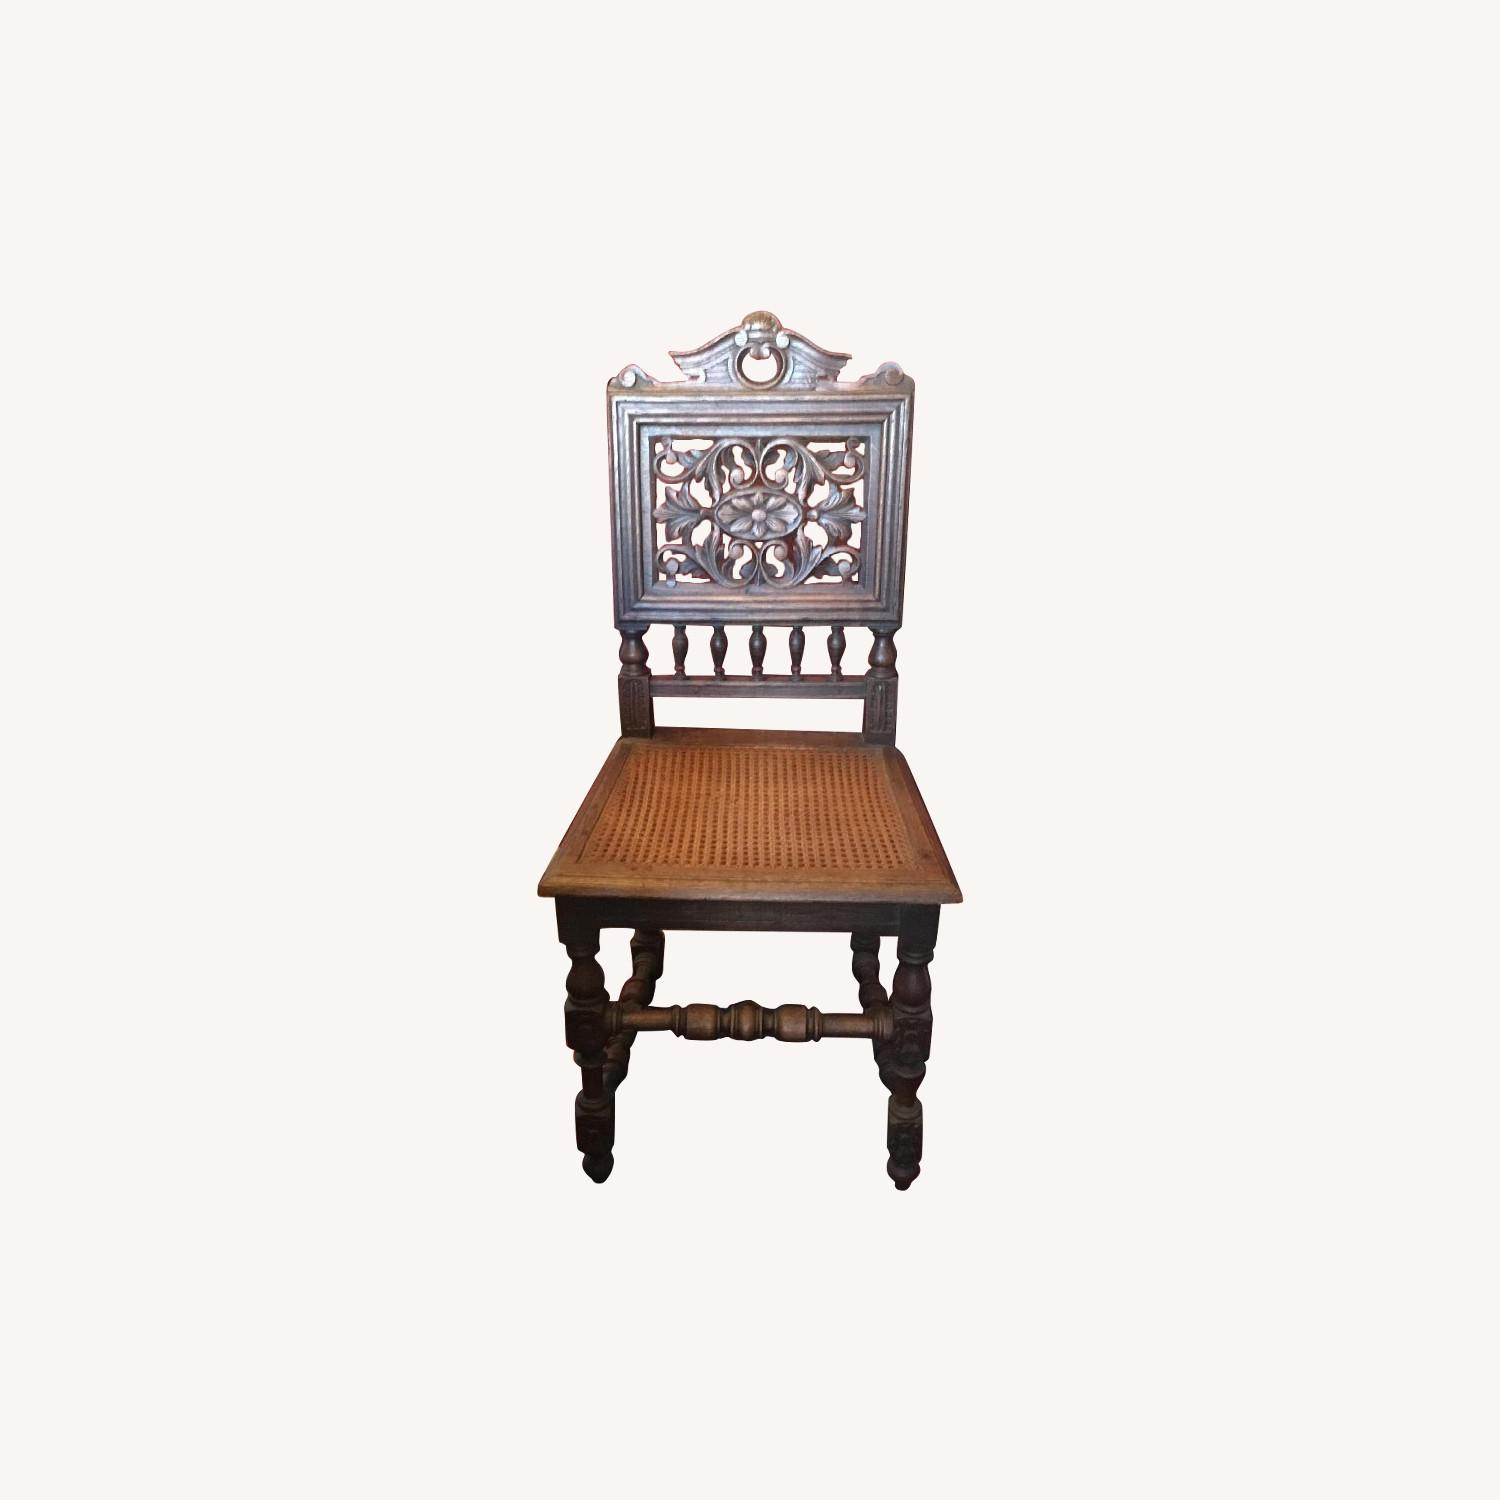 Antique French Oak Chairs - image-0